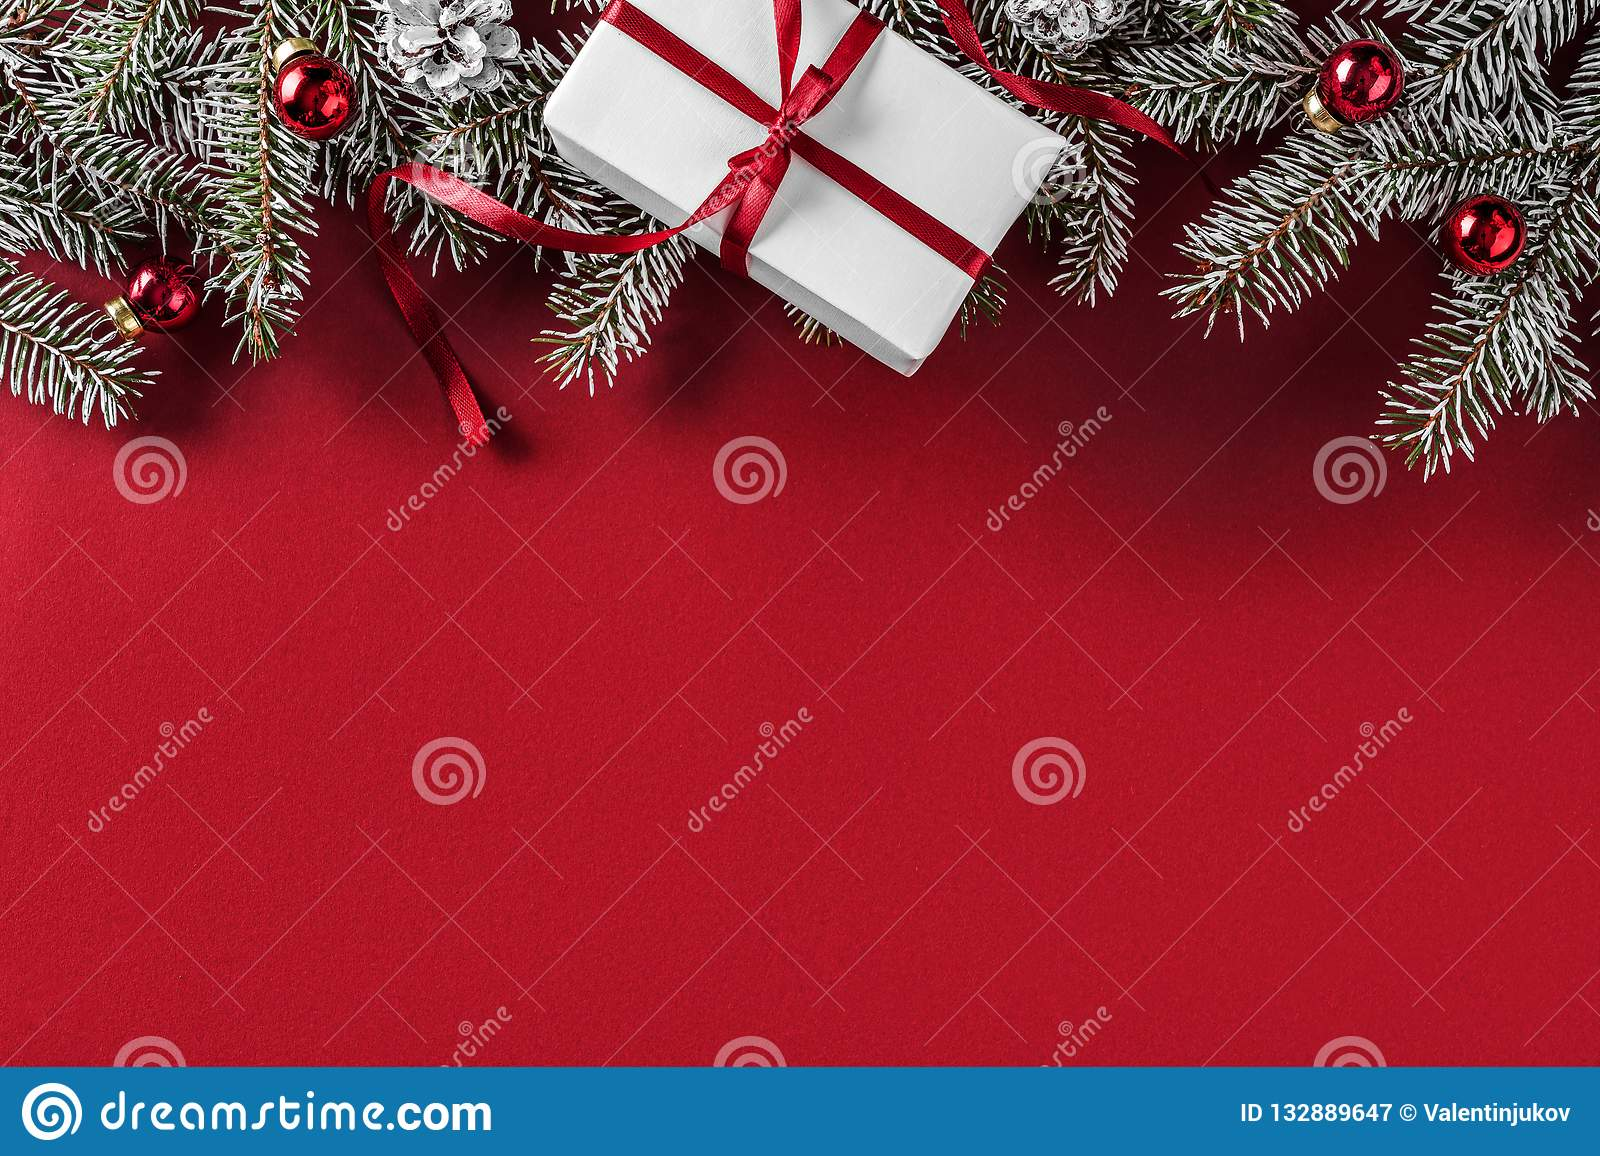 Creative layout frame made of Christmas fir branches, pine cones, gifts, red decoration on red background.